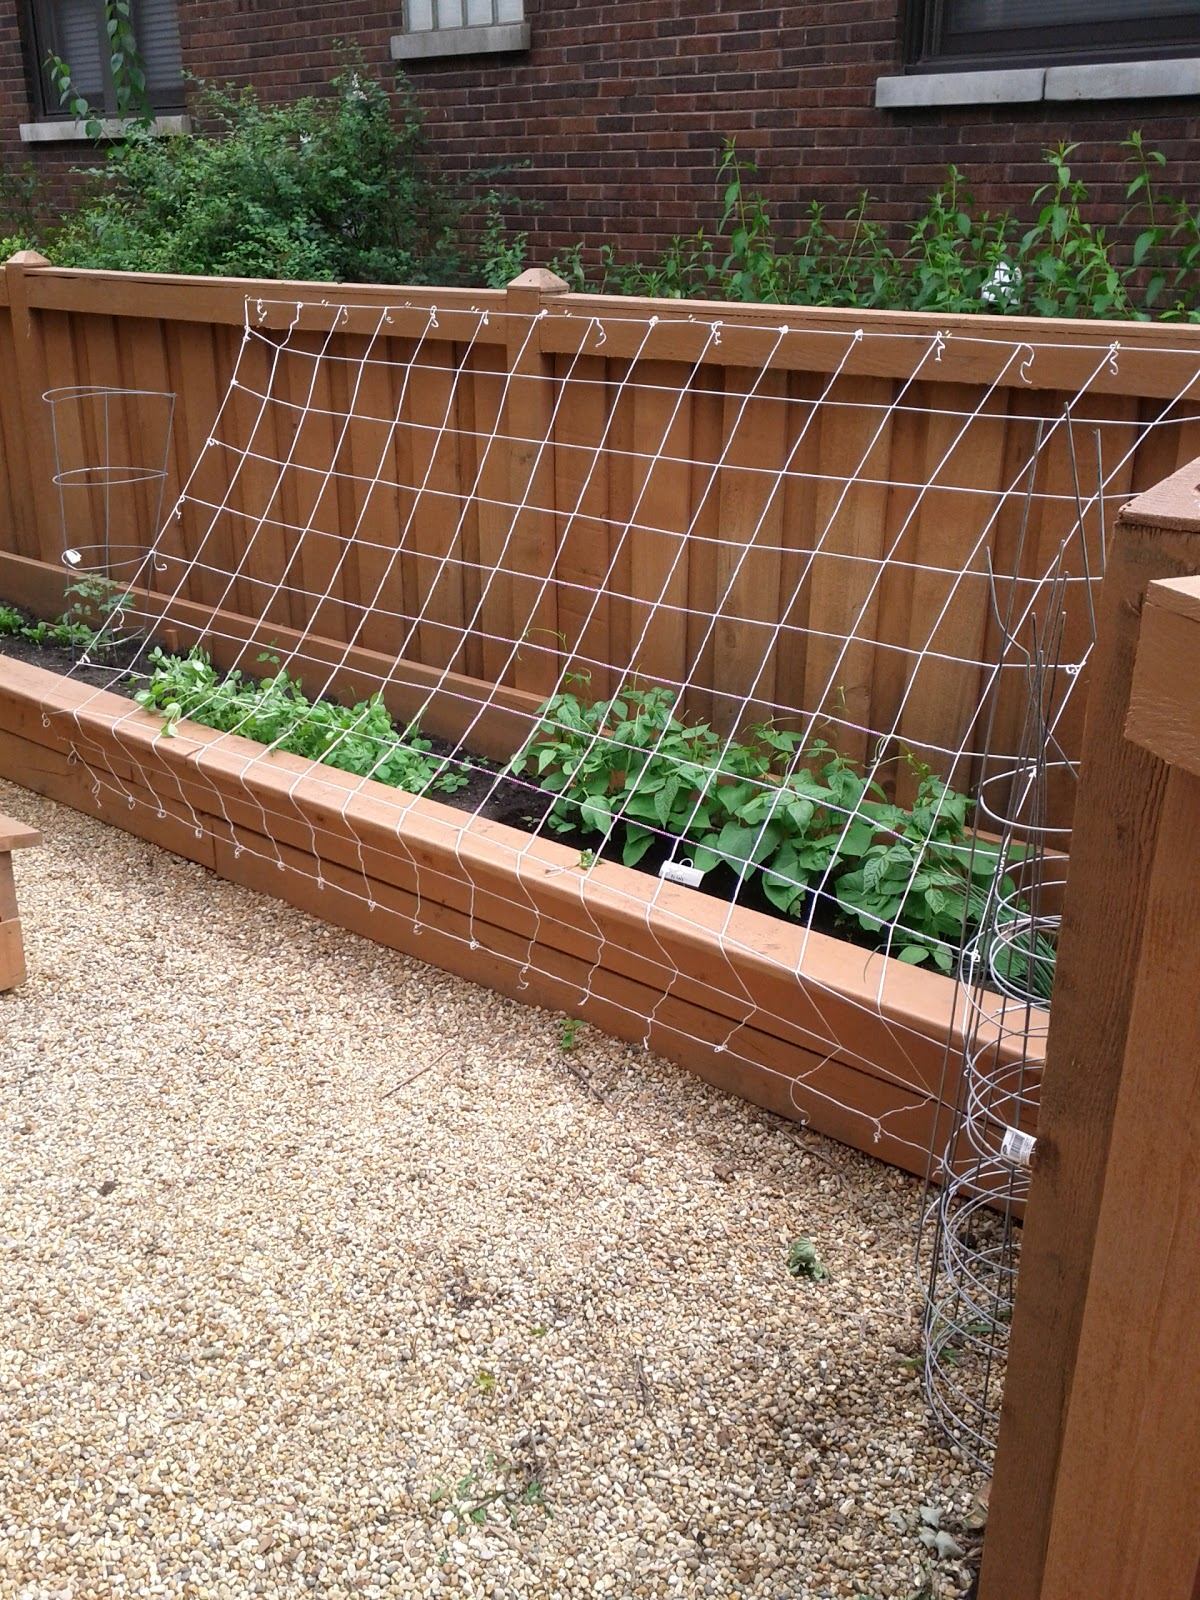 Green Bean Trellis - Installed 2011